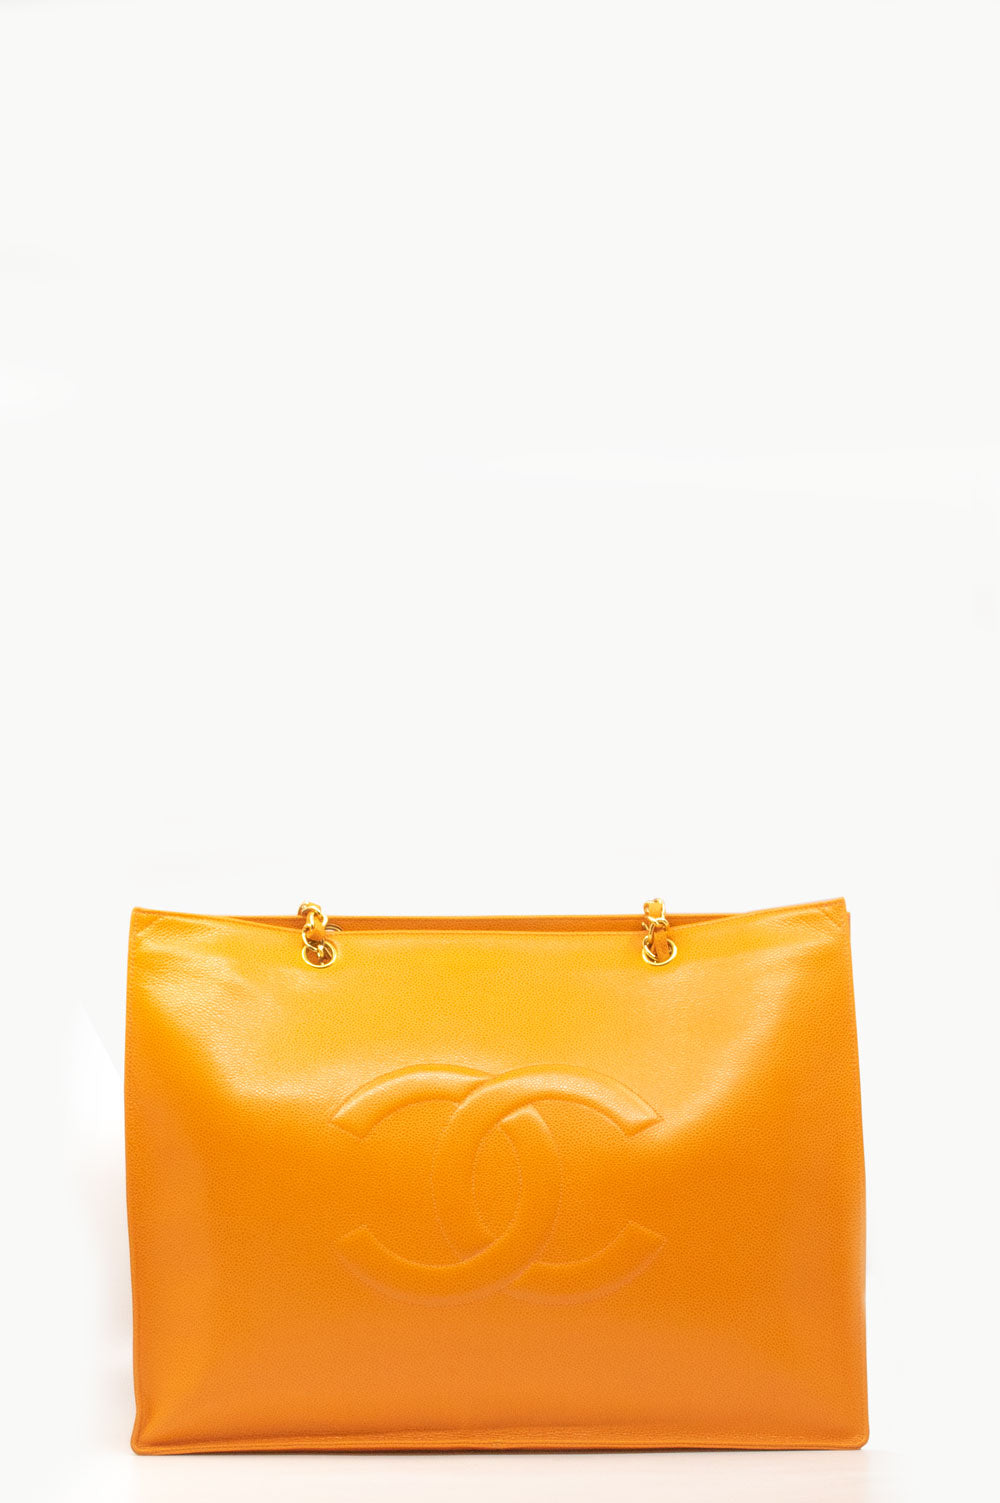 Chanel Shopper in orange.